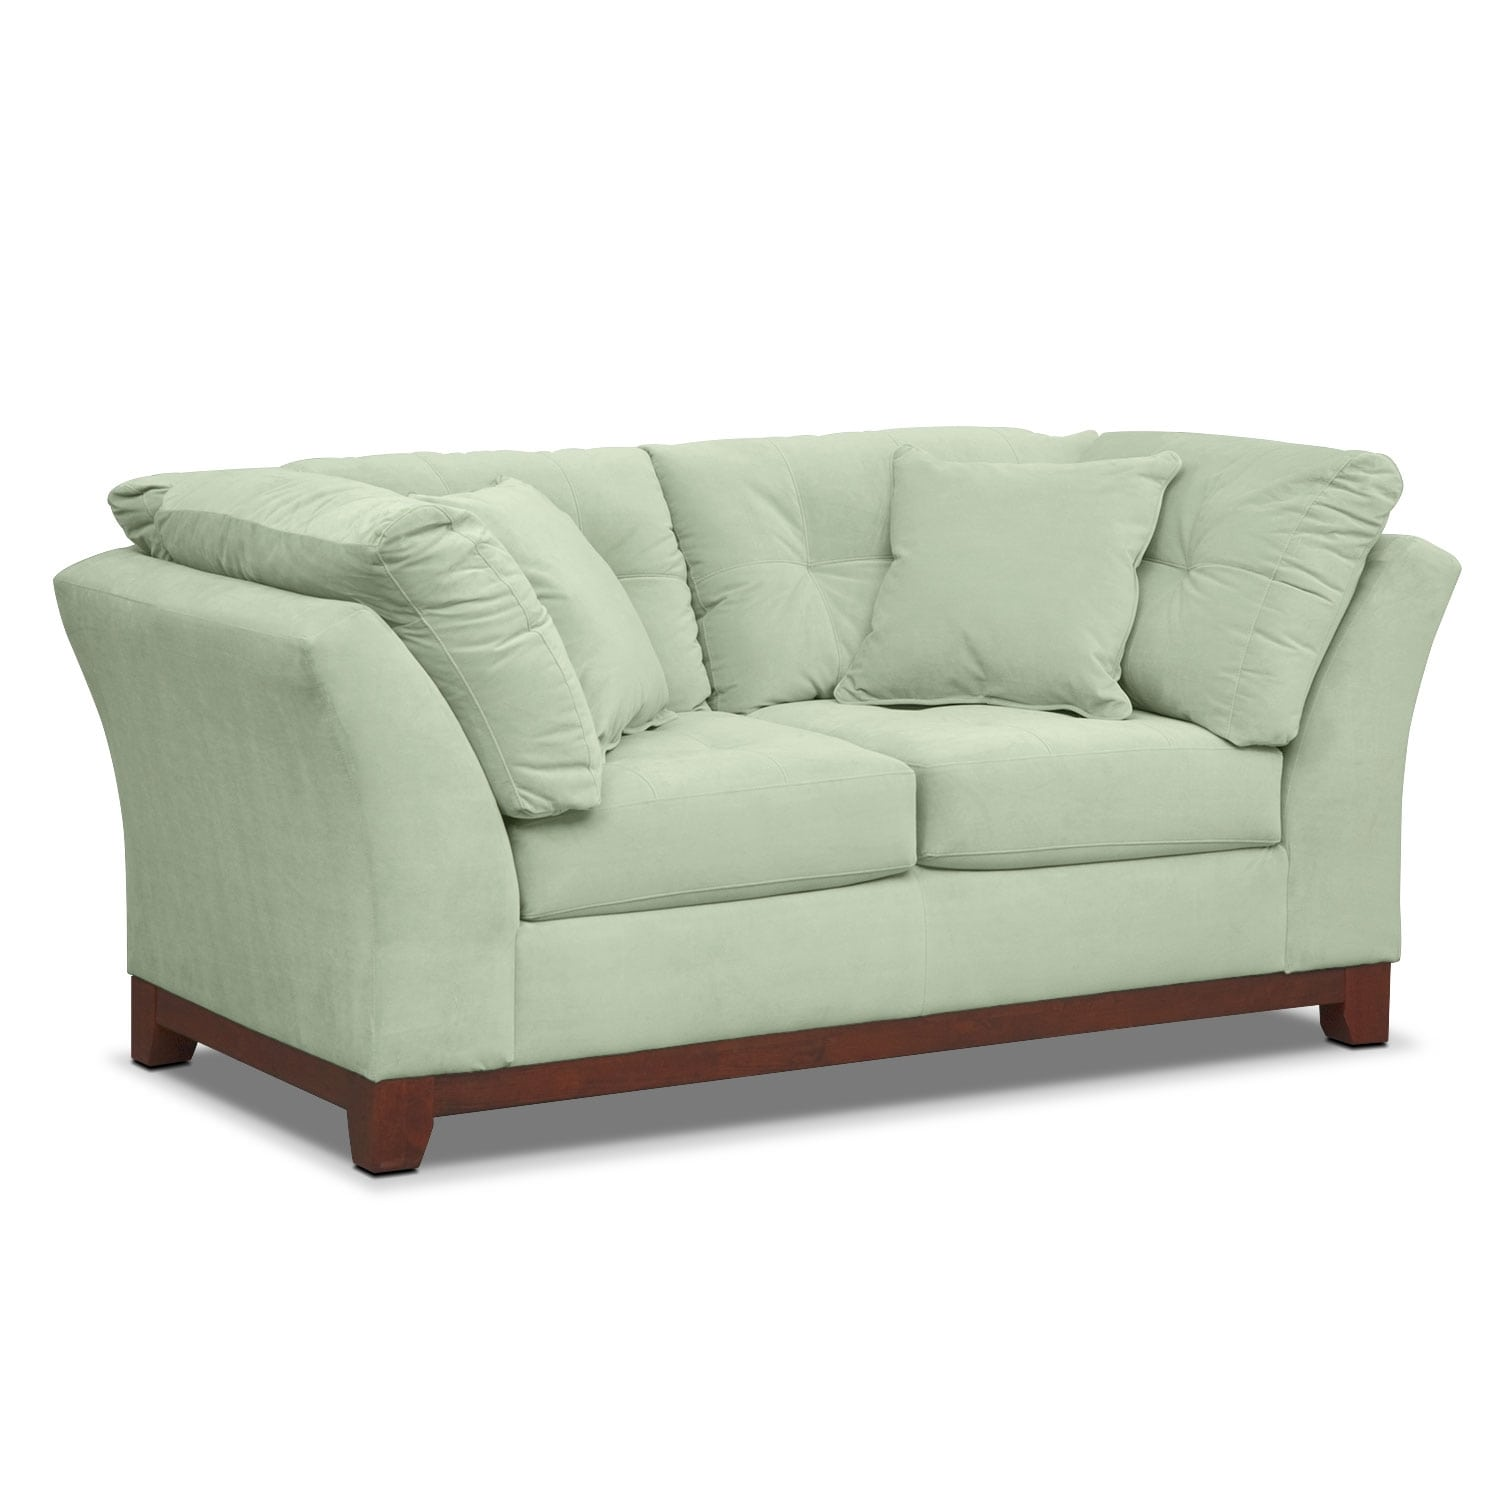 Solace Spa Loveseat